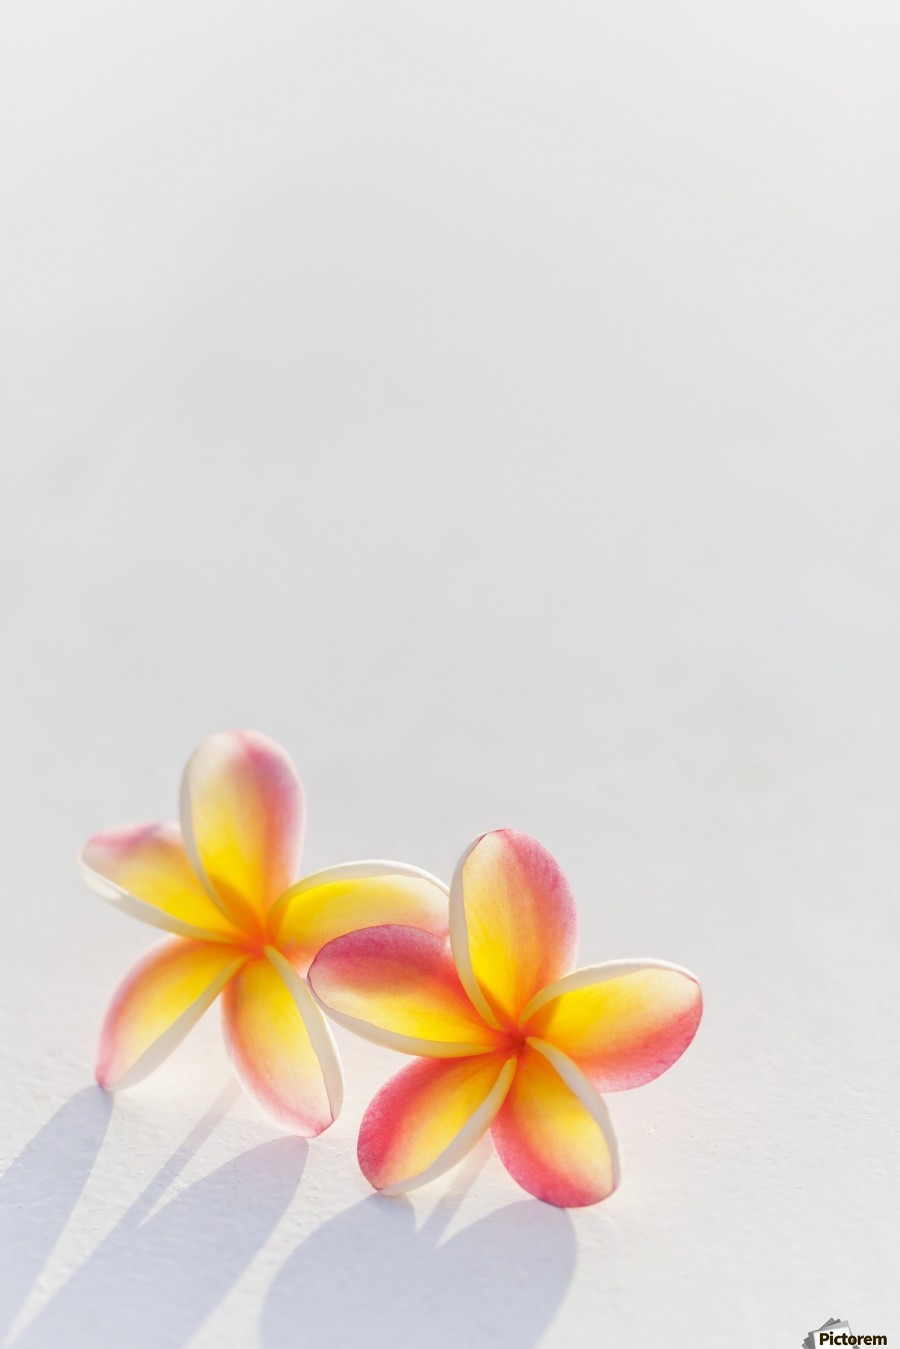 A pair of beautiful yellow and pink Plumeria flowers together (Apocynaceae) on a white background; Honolulu, Oahu, Hawaii, United States of America  Print